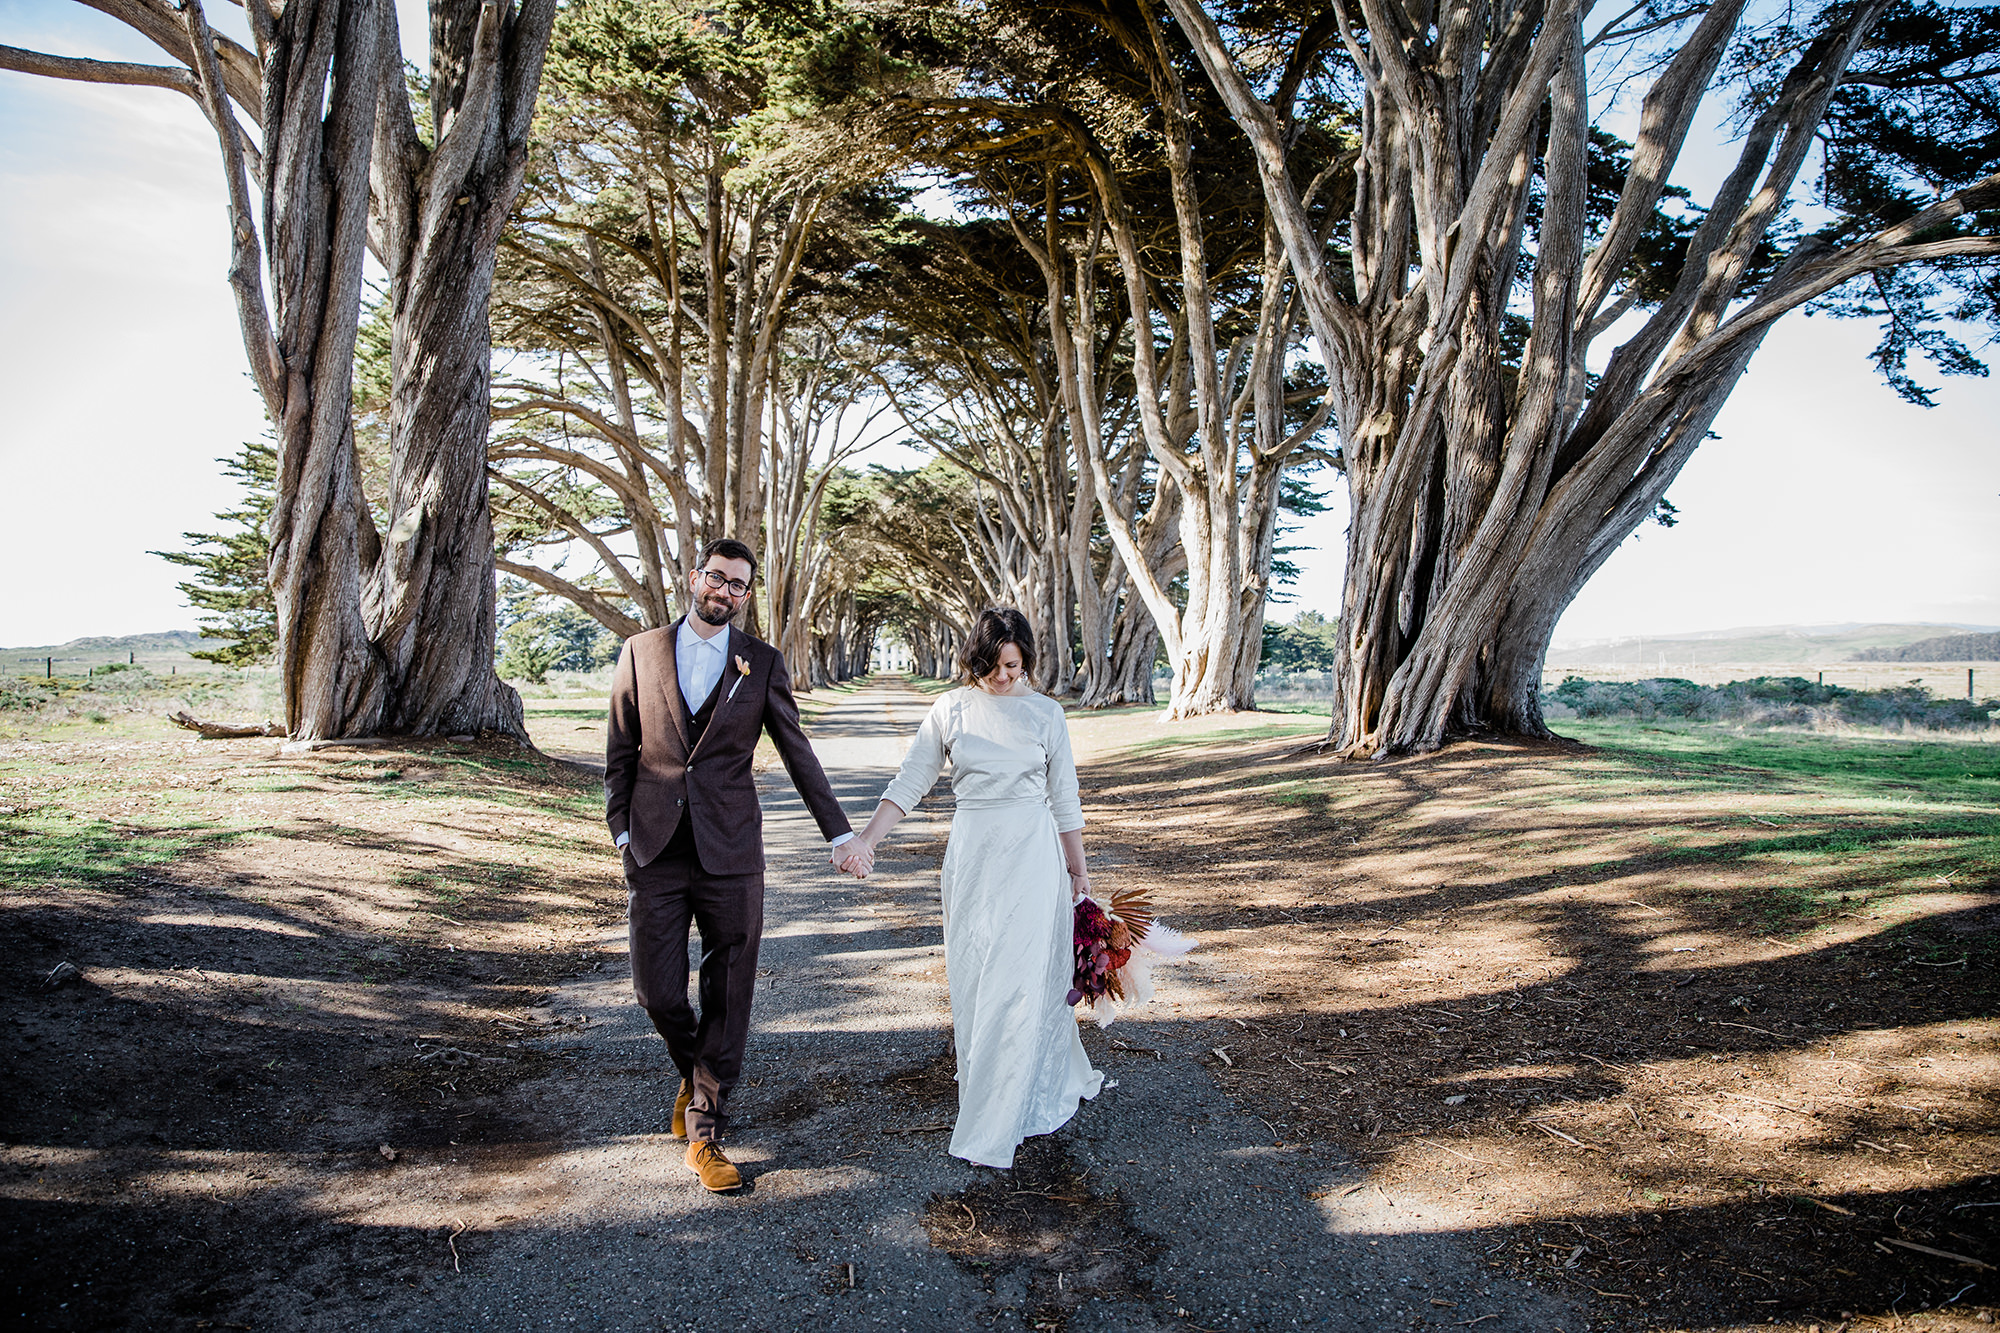 Bride and groom holding holds at the Cypress Tree Tunnel for Point Reyes Elopement.